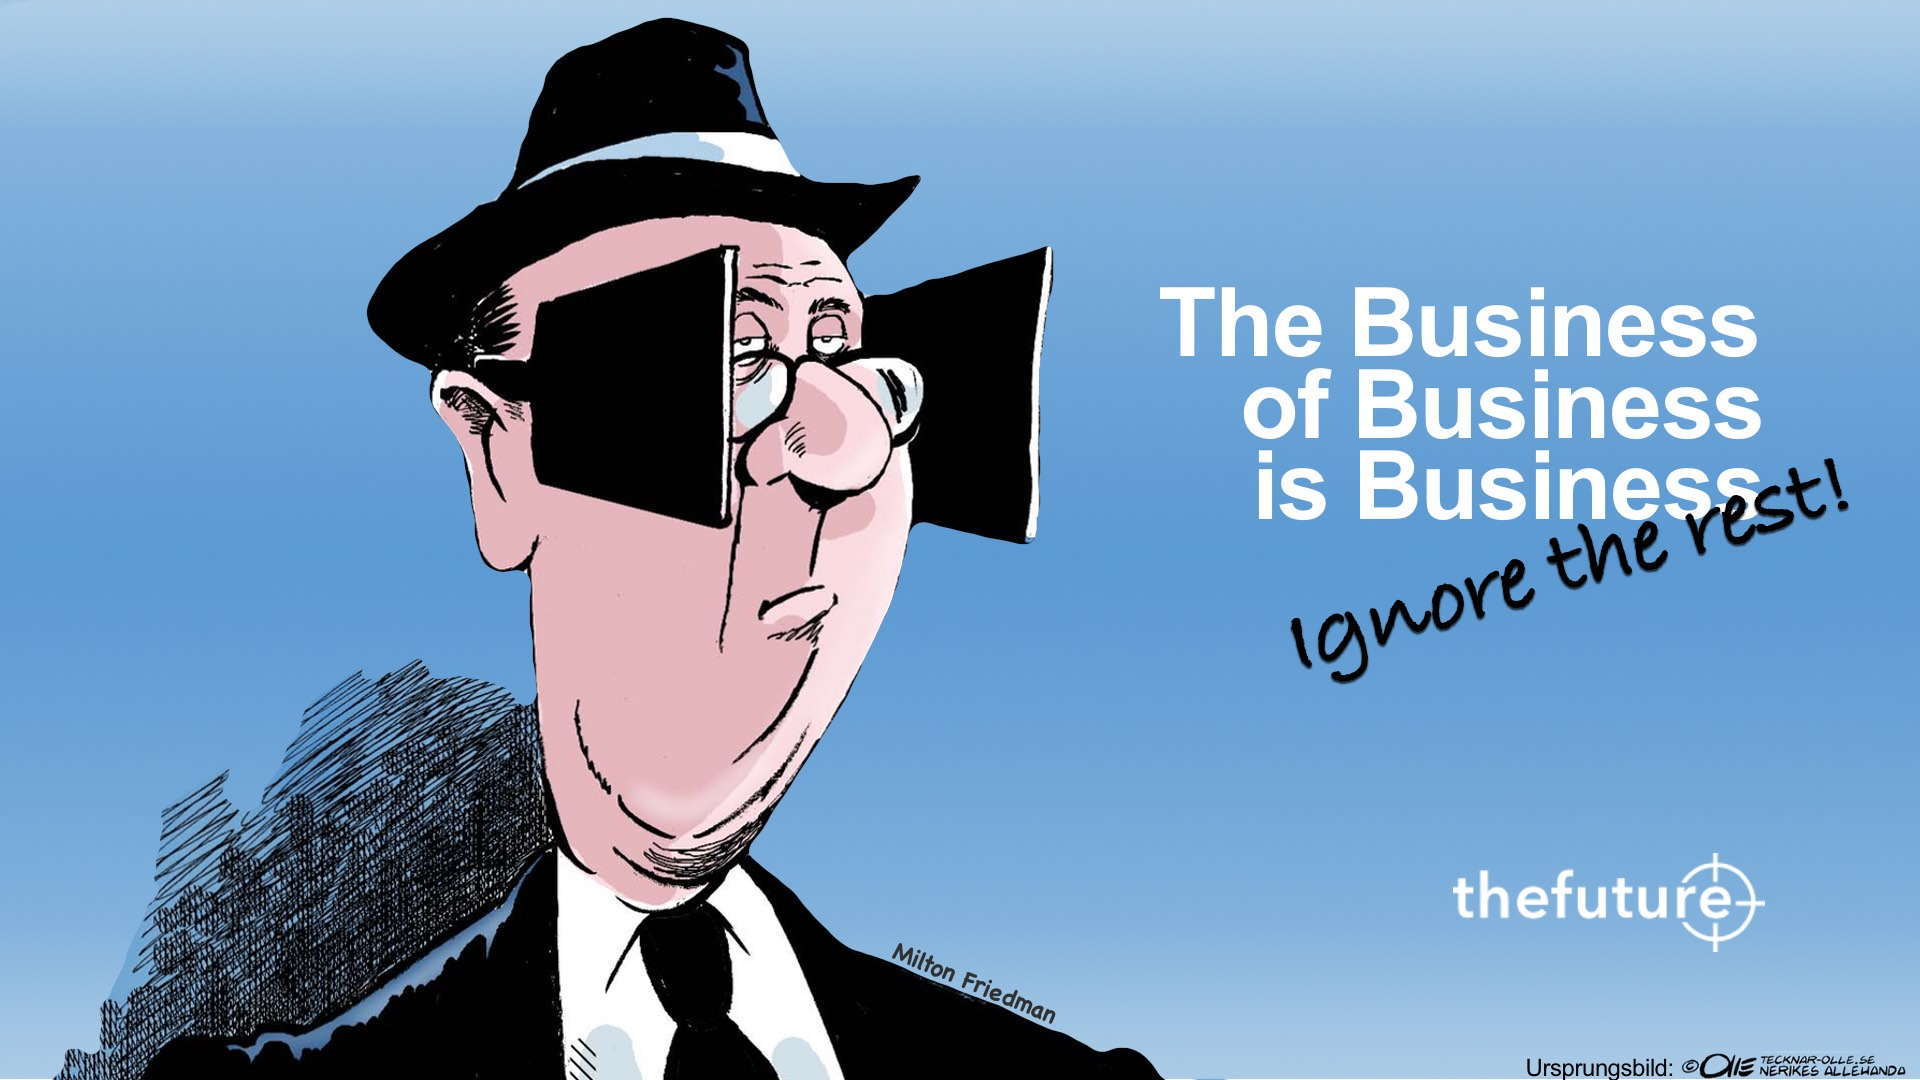 thefuture, Blogg, The-Business-of-Business-is-Business